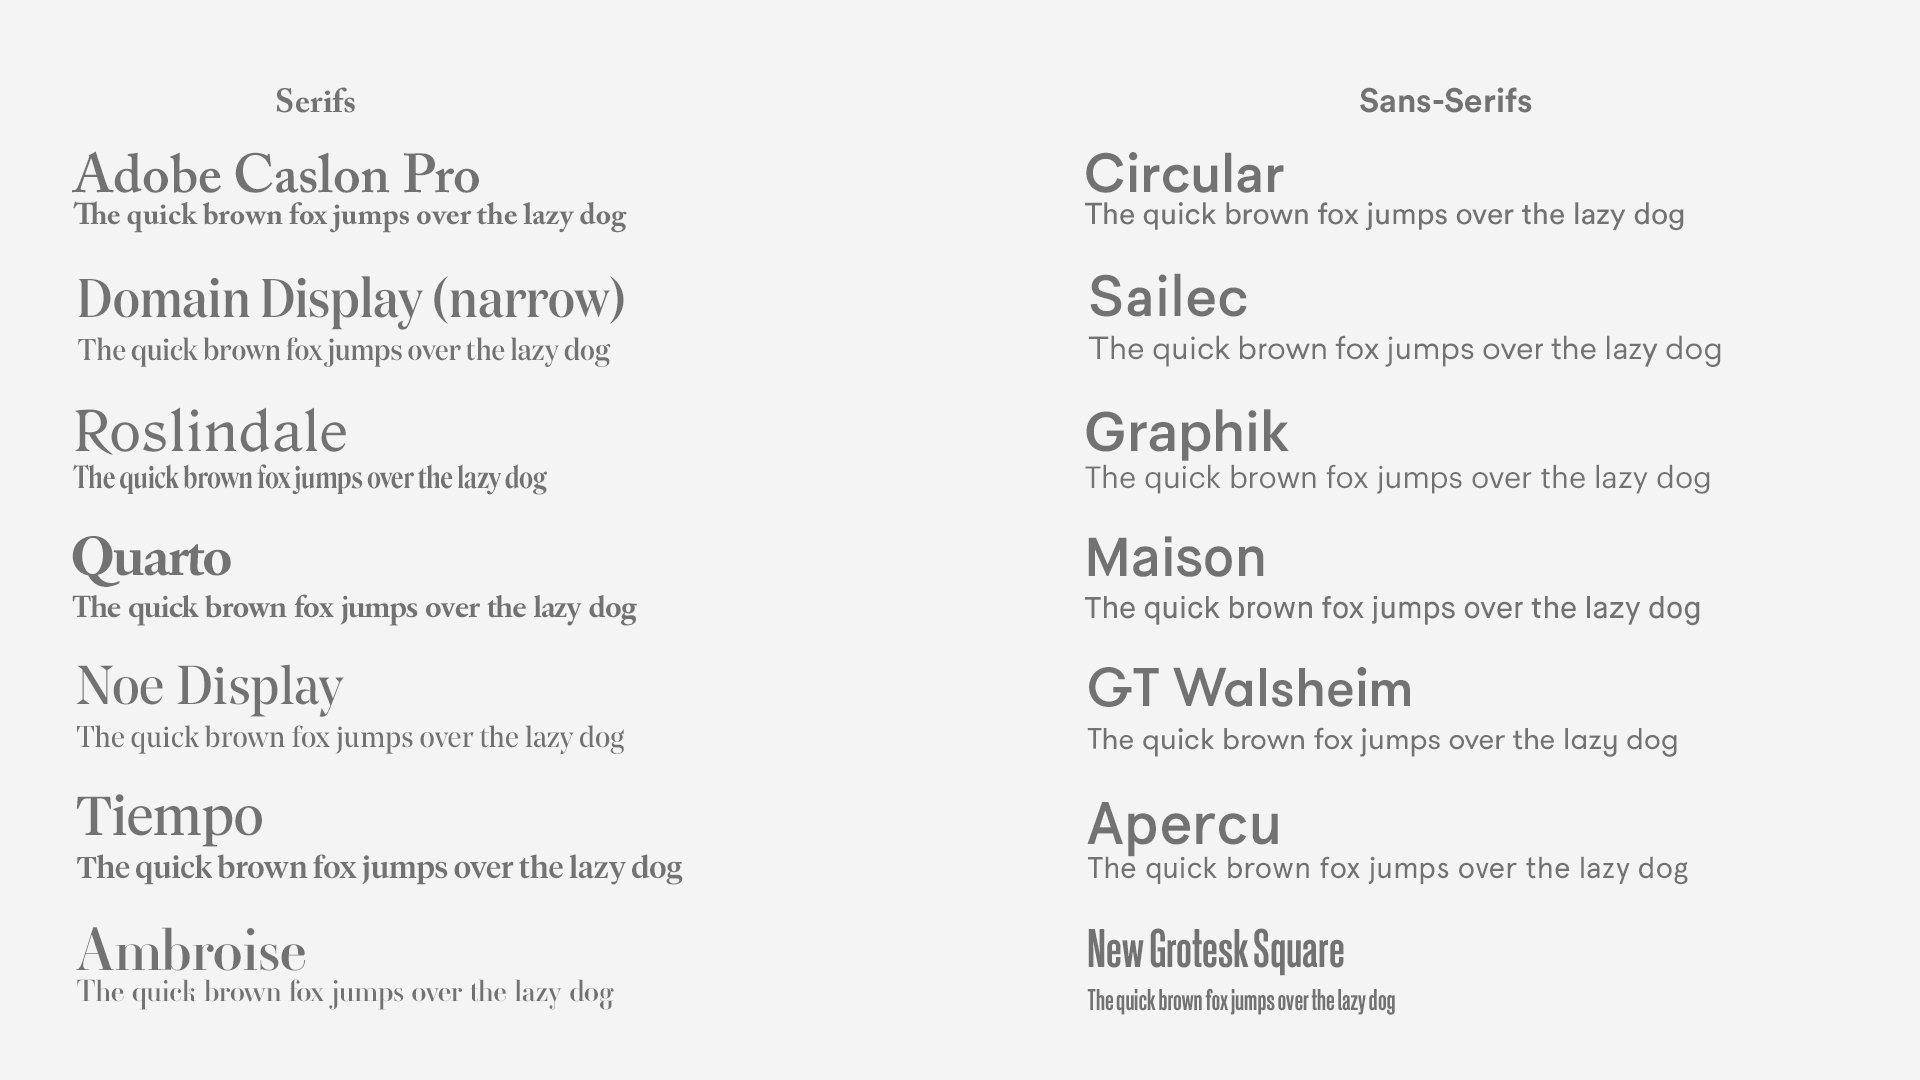 A collection of Great premium serif and sans serif typefaces